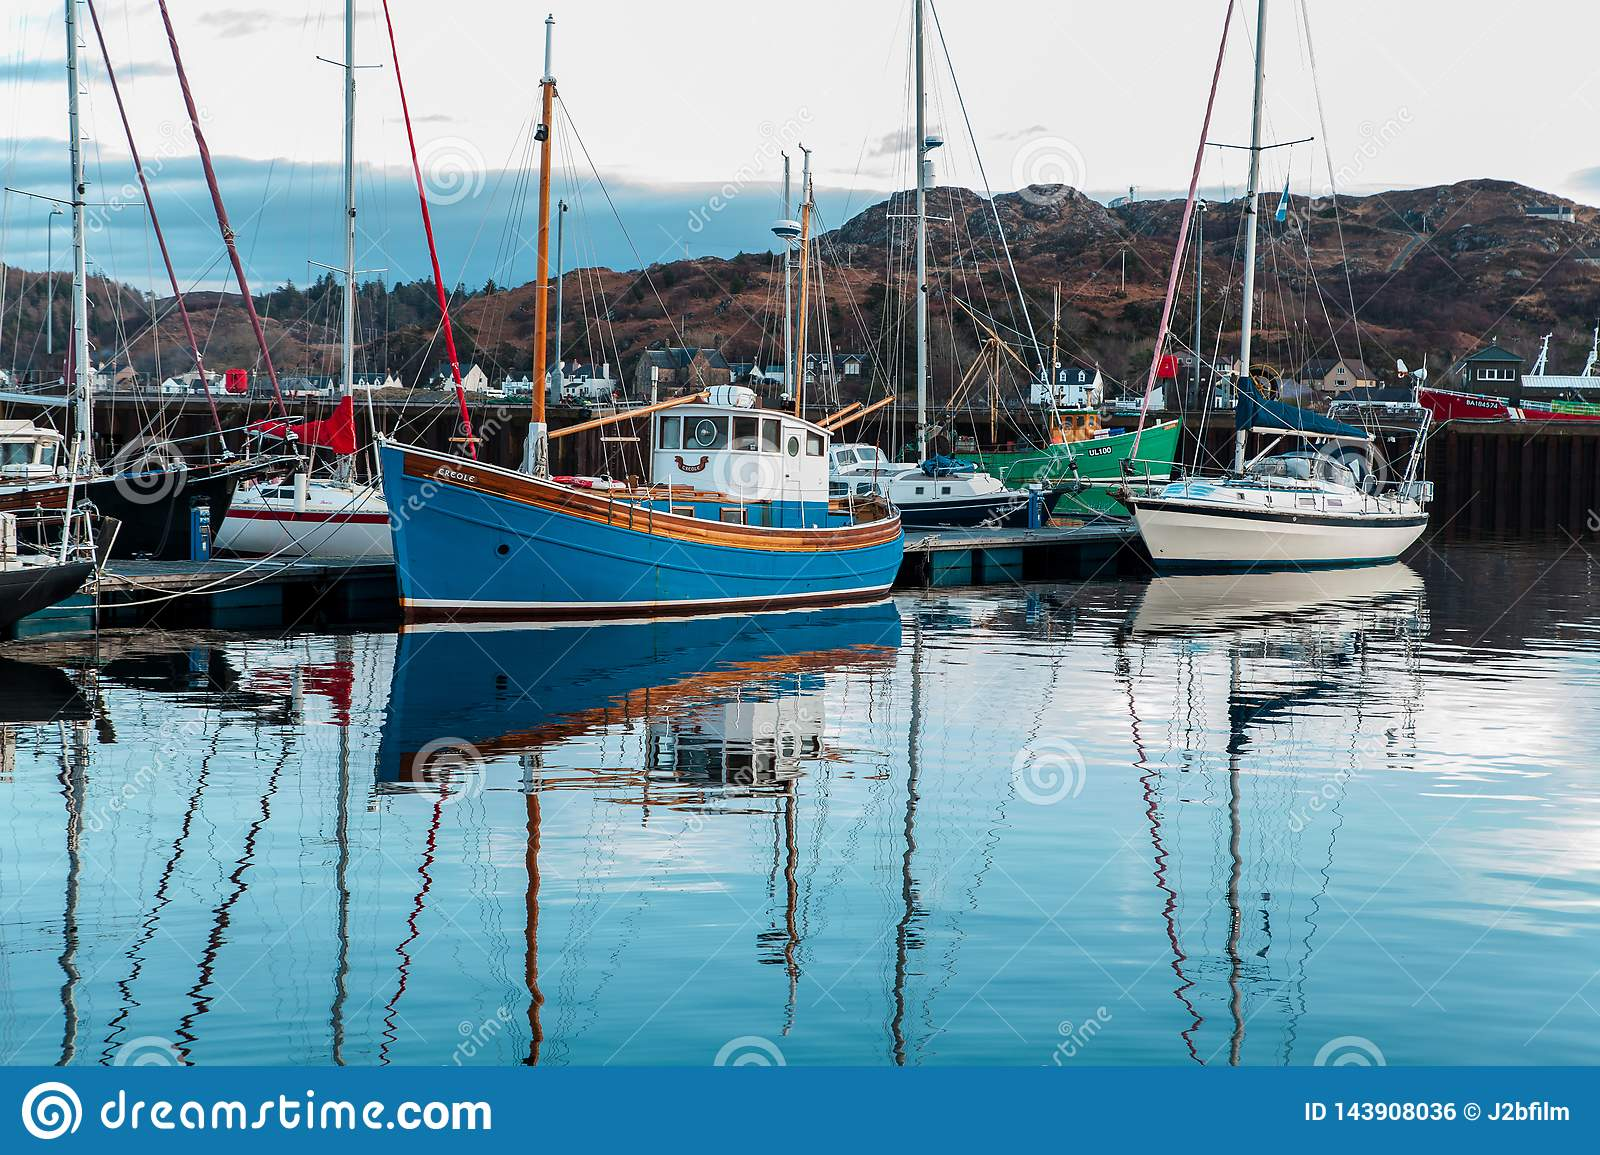 The fishing boat moored in a jettie in Lochinver Marina